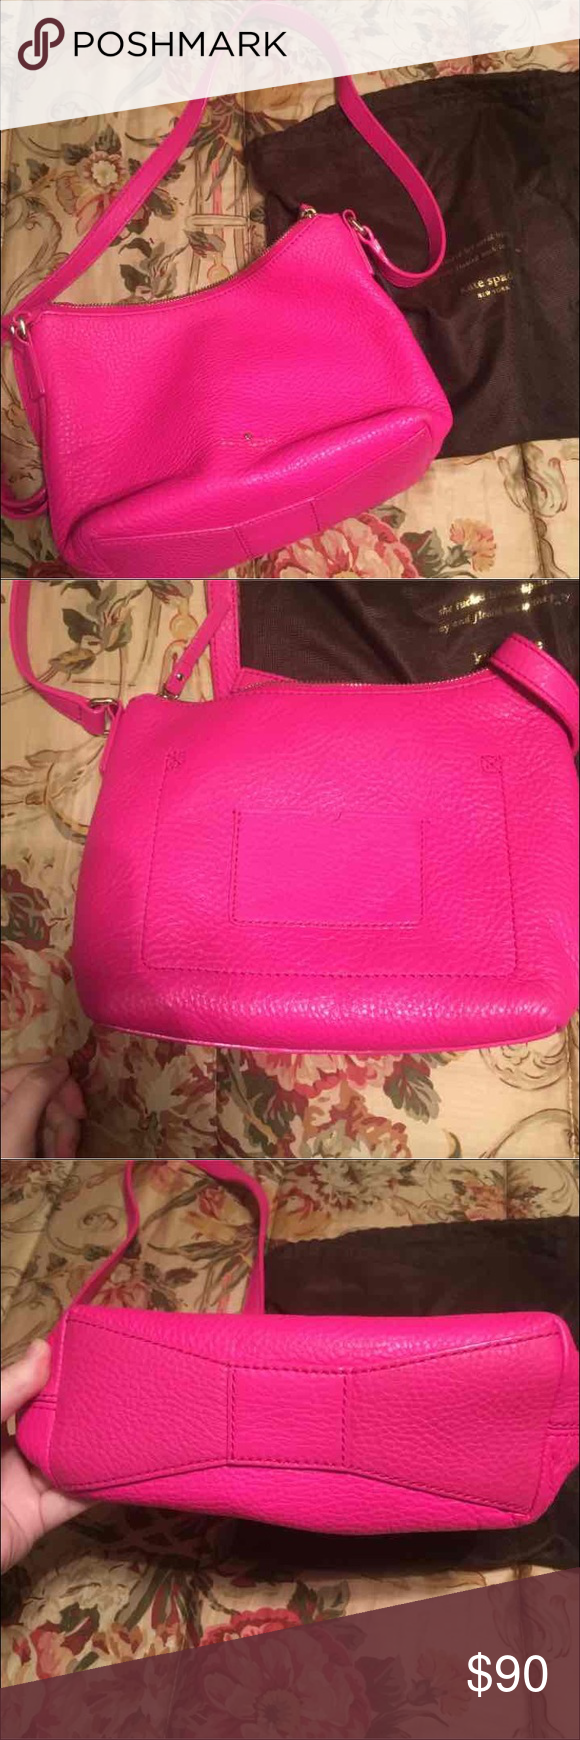 Kate Spade pink crossbody only used a few times, comes with dust bag kate spade Bags Crossbody Bags